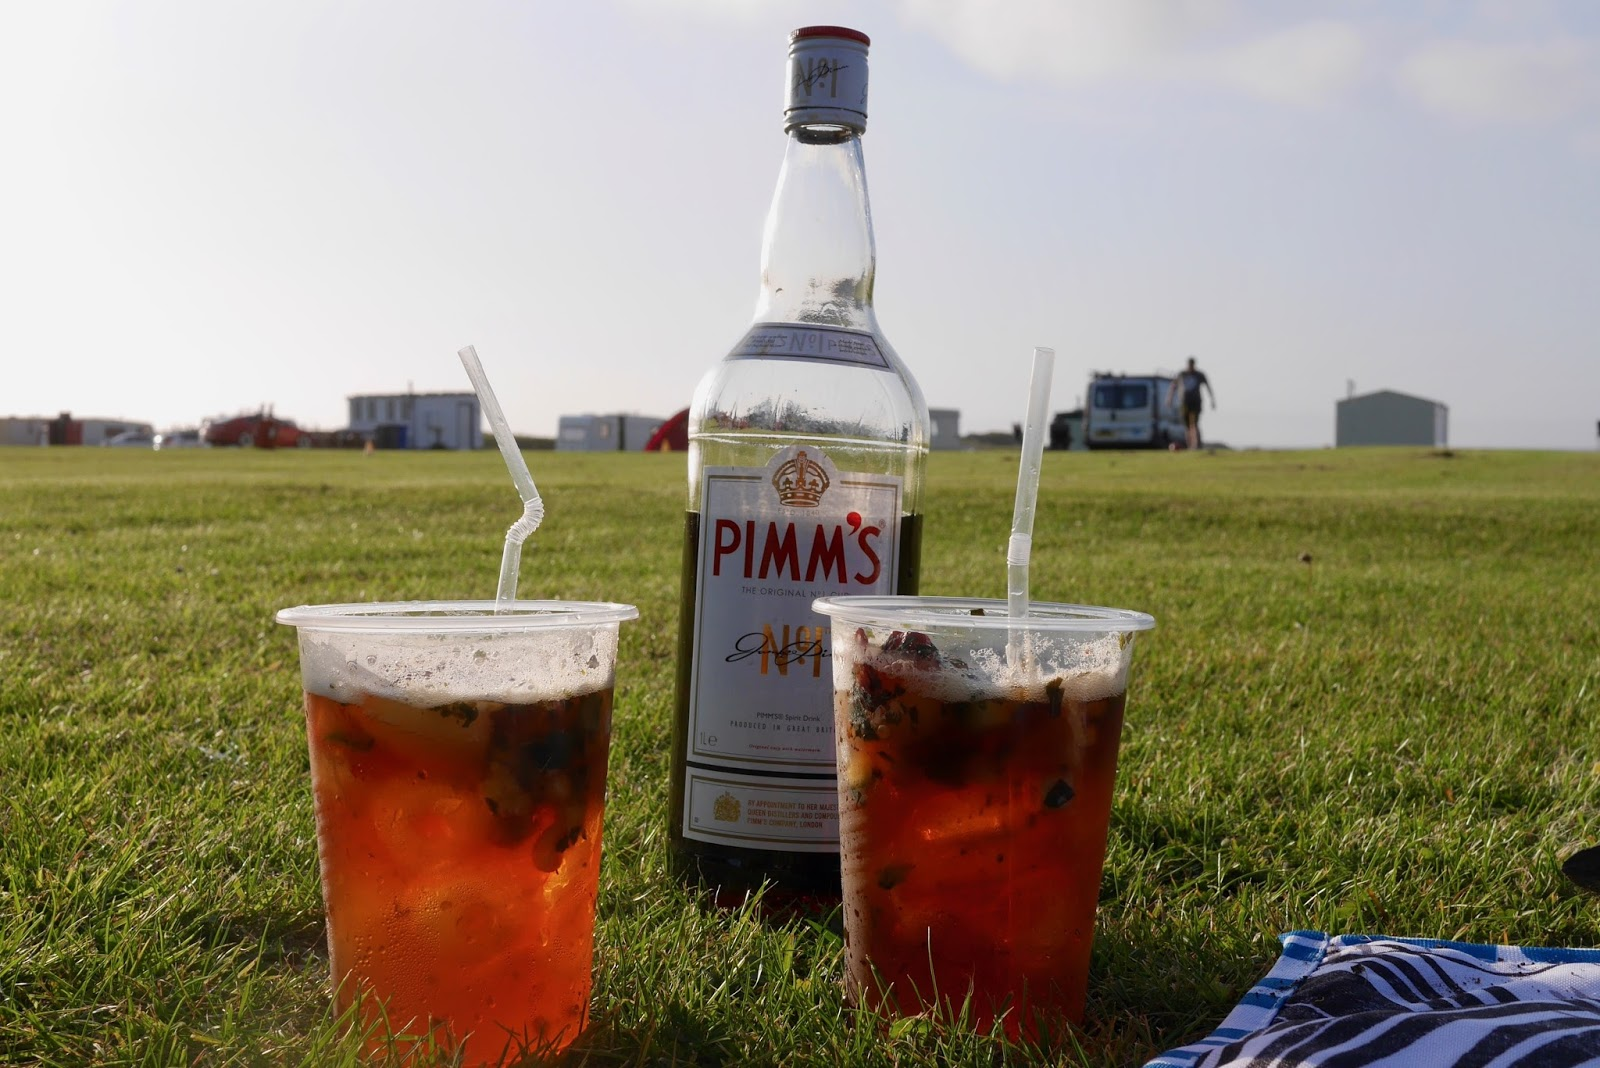 Drinking some Pimms at the campsite with fruit, www.calmctravels.com